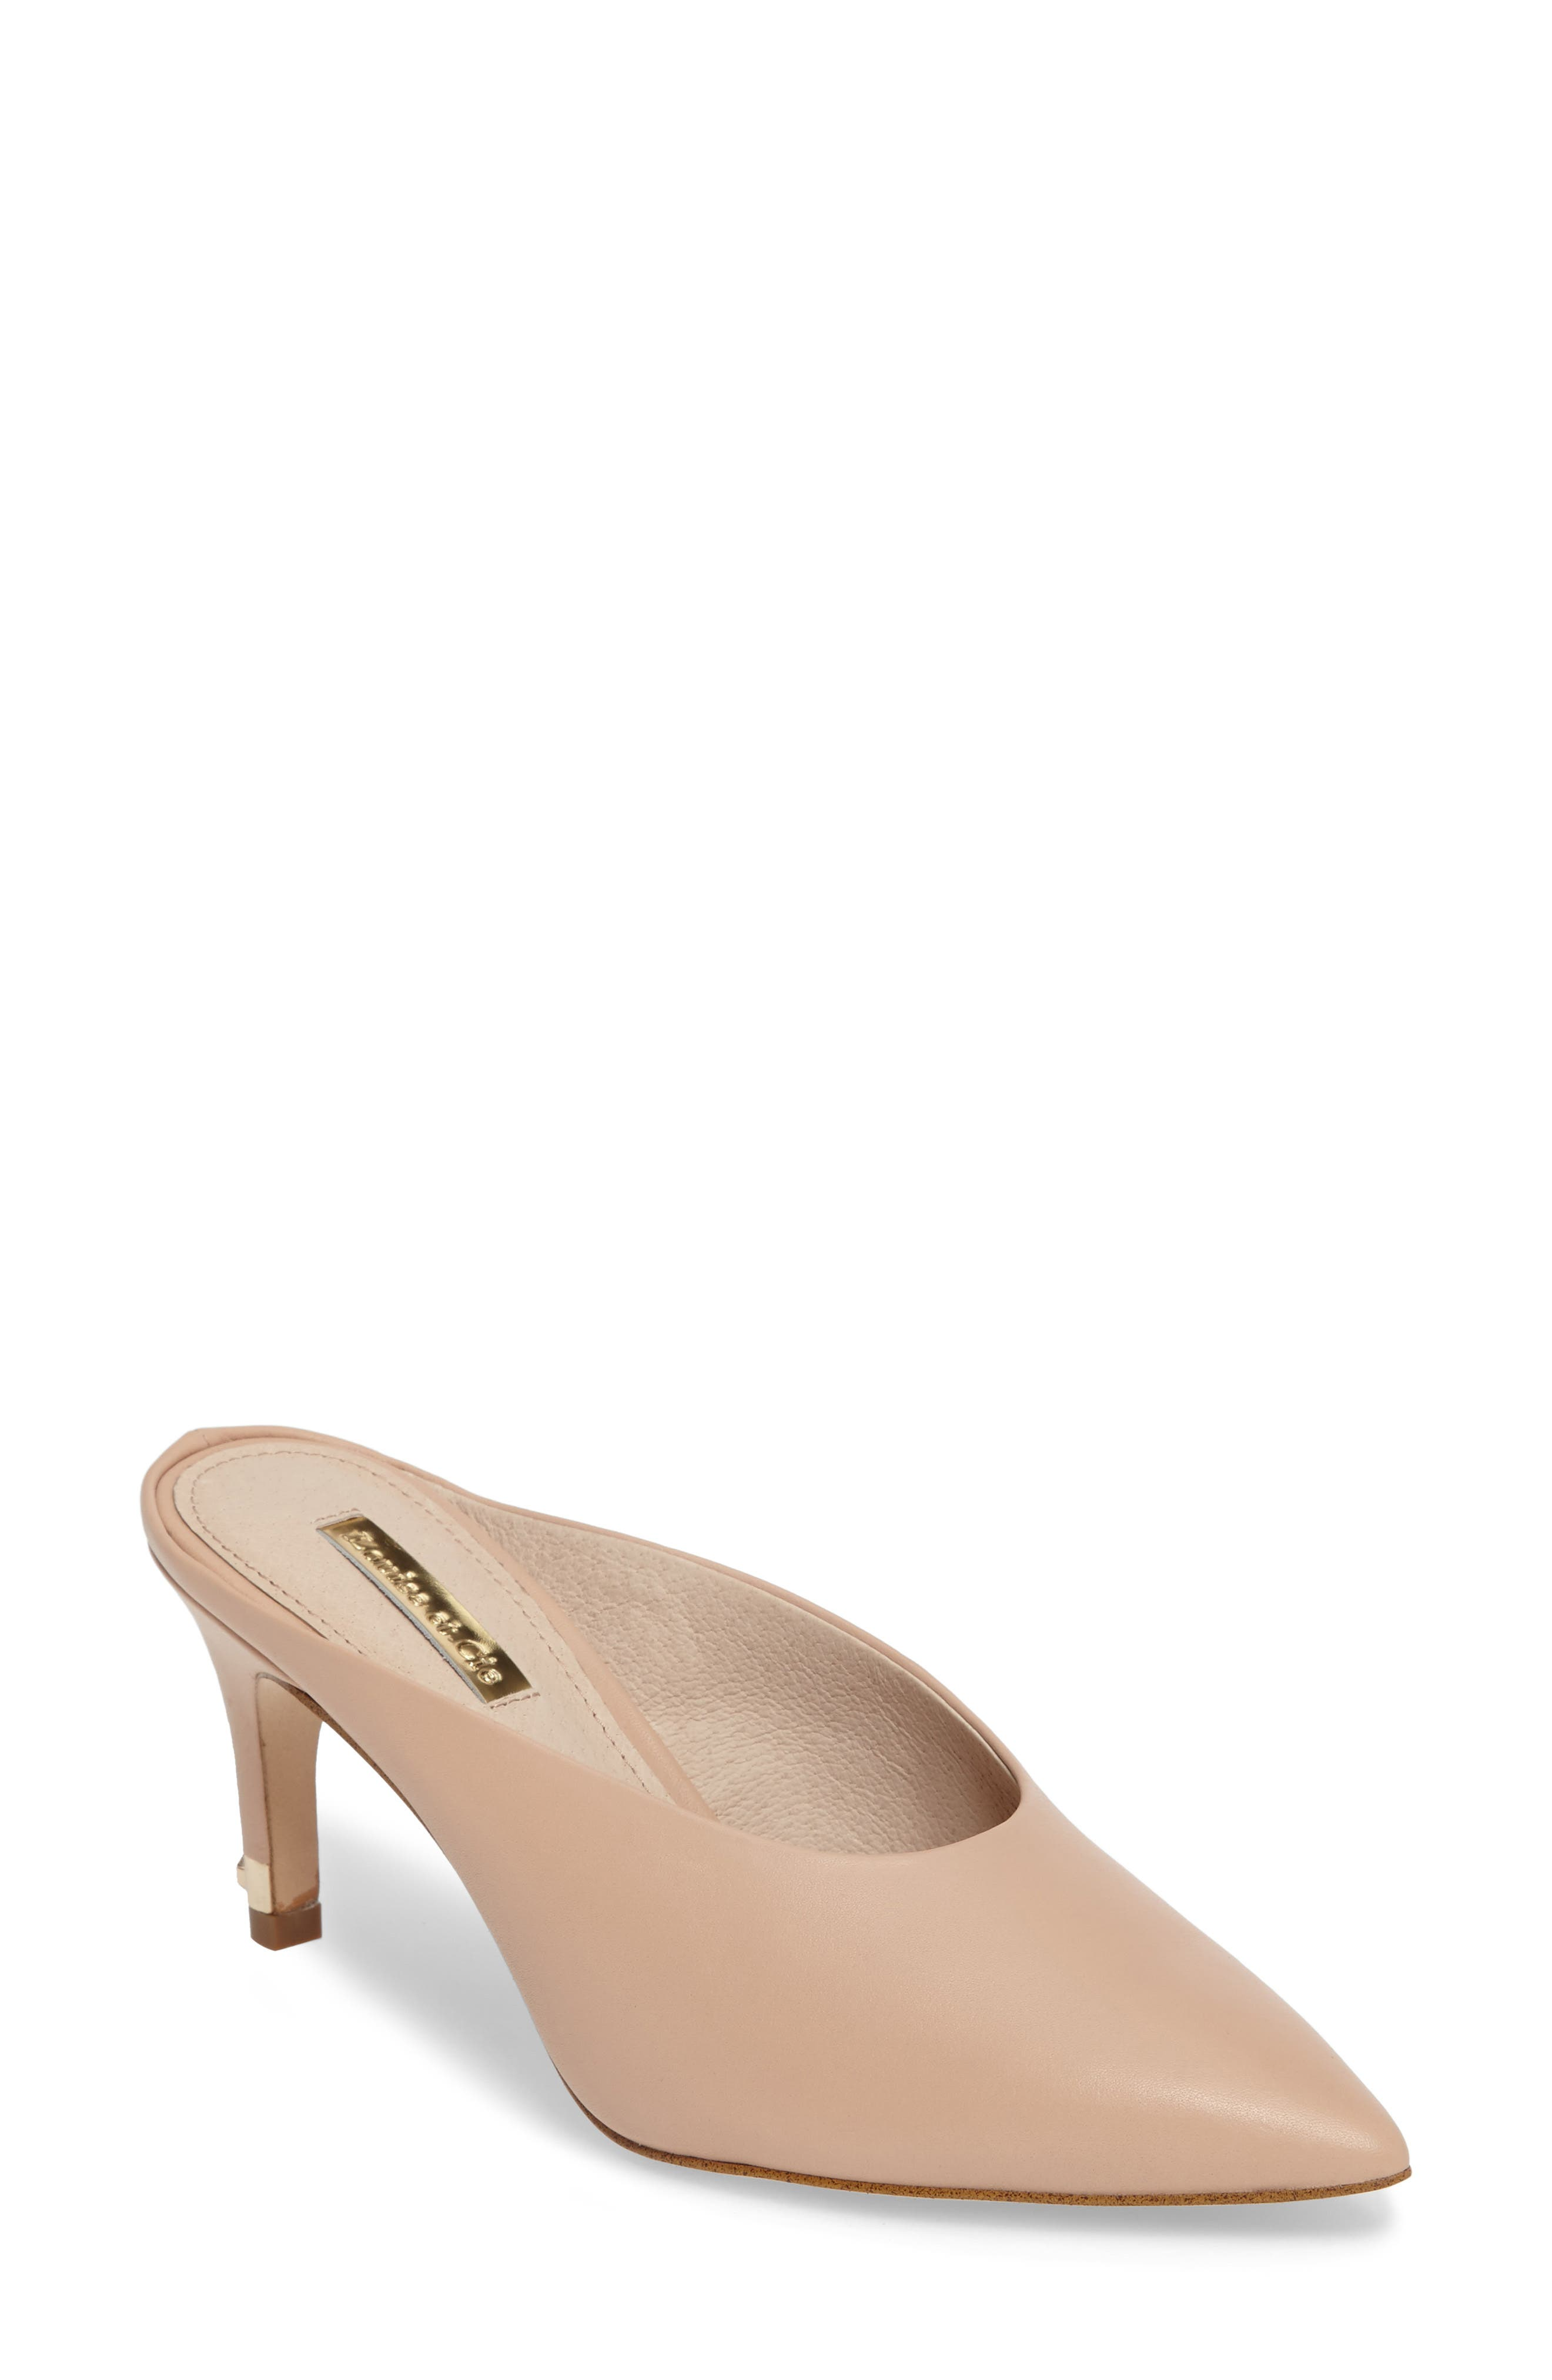 Louise et Cie Karas Pointy Toe Slide Pump (Women)